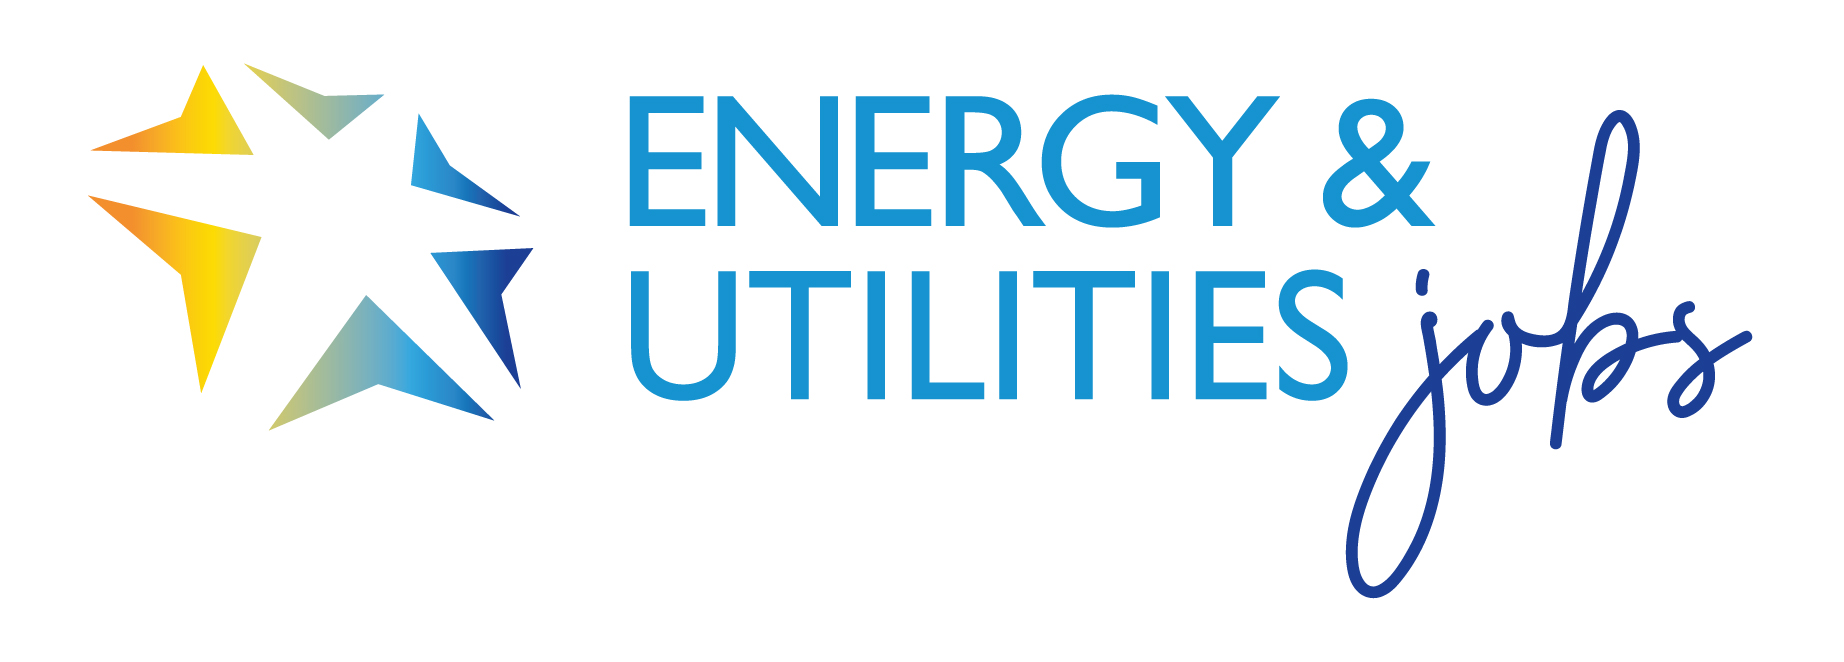 Energy & Utilities Jobs